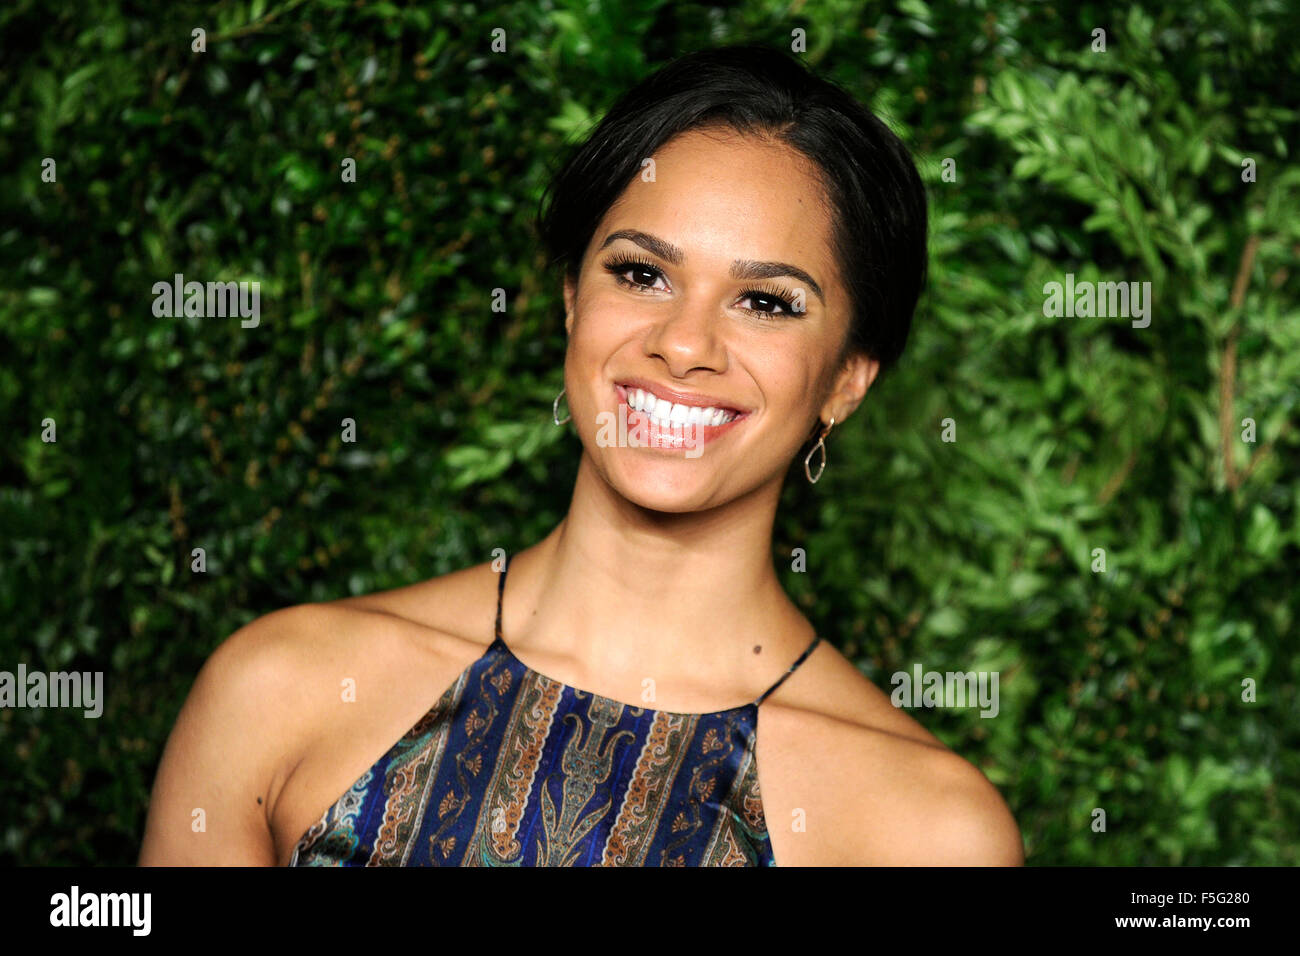 New York City. 2nd Nov, 2015. Misty Copeland attends the 12th annual CFDA/Vogue Fashion Fund Awards at Spring Studios - Stock Image